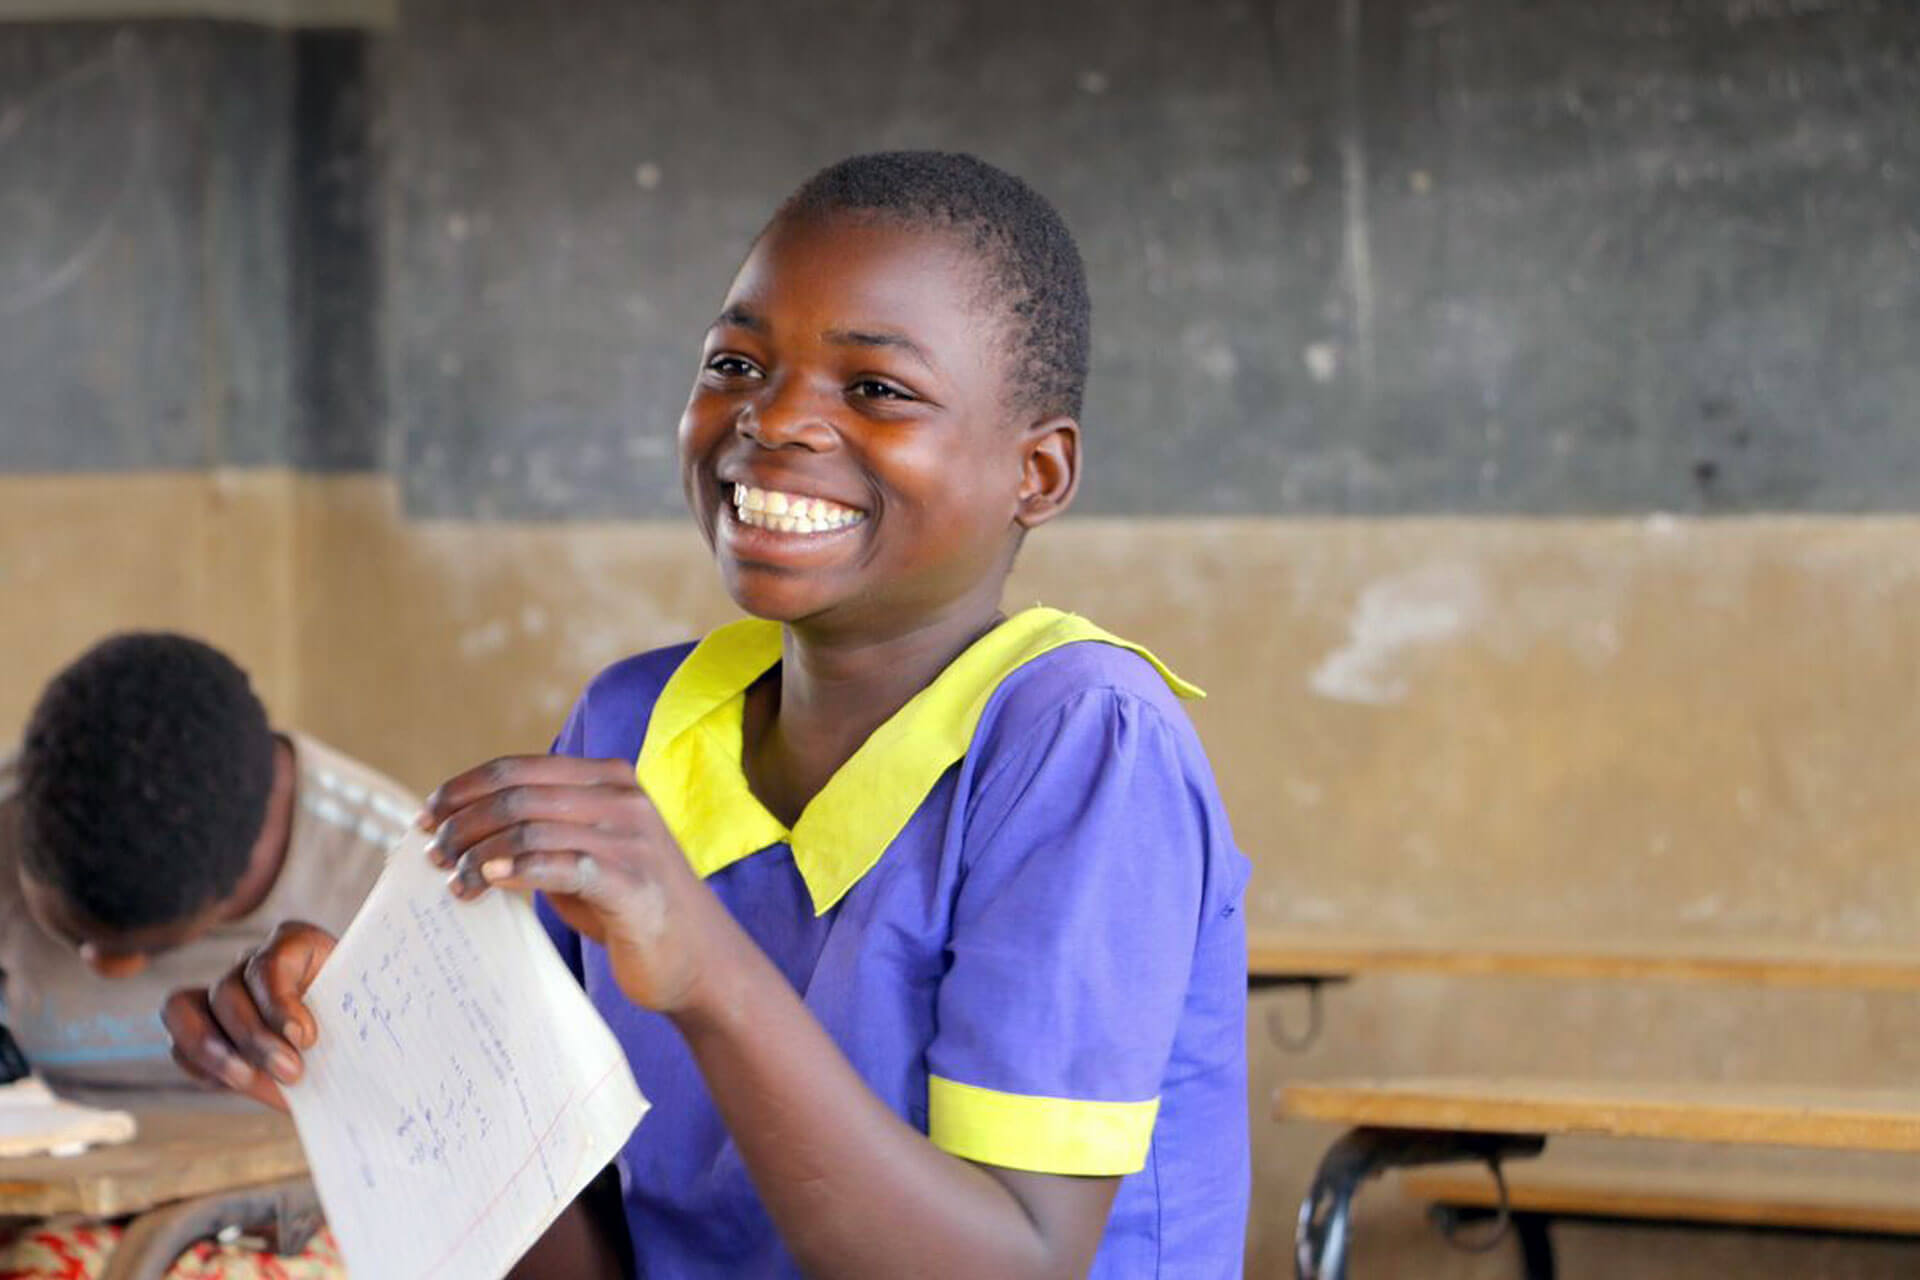 A confident Lucy Chalire smiles after she completes her end of year mathematics exam at Namera Primary school. Lucy is a fairly bright student as she usually finishes third in a class of 45. Despite these achievements, attending school has not always been easy for Lucy, mostly due to the lack of access to safe water in her area which greatly affected her learning. The situation is different now; a solar powered water pump was installed in an area encompassing Lucy's village and school, by UNICEF Malawi with funding from the European Union. The solar pump has transformed life in Lucy's community, and the number of children at Namera Primary School has increased from 300 to 449 as a direct result of the pump. The lack of access to adequate and clean water negatively impacts the health and education of children, especially girls. Absenteeism in school is common as many children become vulnerable to diseases such as diarrhoea. In homes, water supply impacts directly on the lives of women and girls since they are the ones who carry water, often at a long distance. In helping communities realise access to better and clean water supply, UNICEF has partnered with the European Union and the Ministry of Education Science and Technology and other partners to implement reticulated solar powered systems tapping ground water - serving schools, health centres, communities and other facilities.